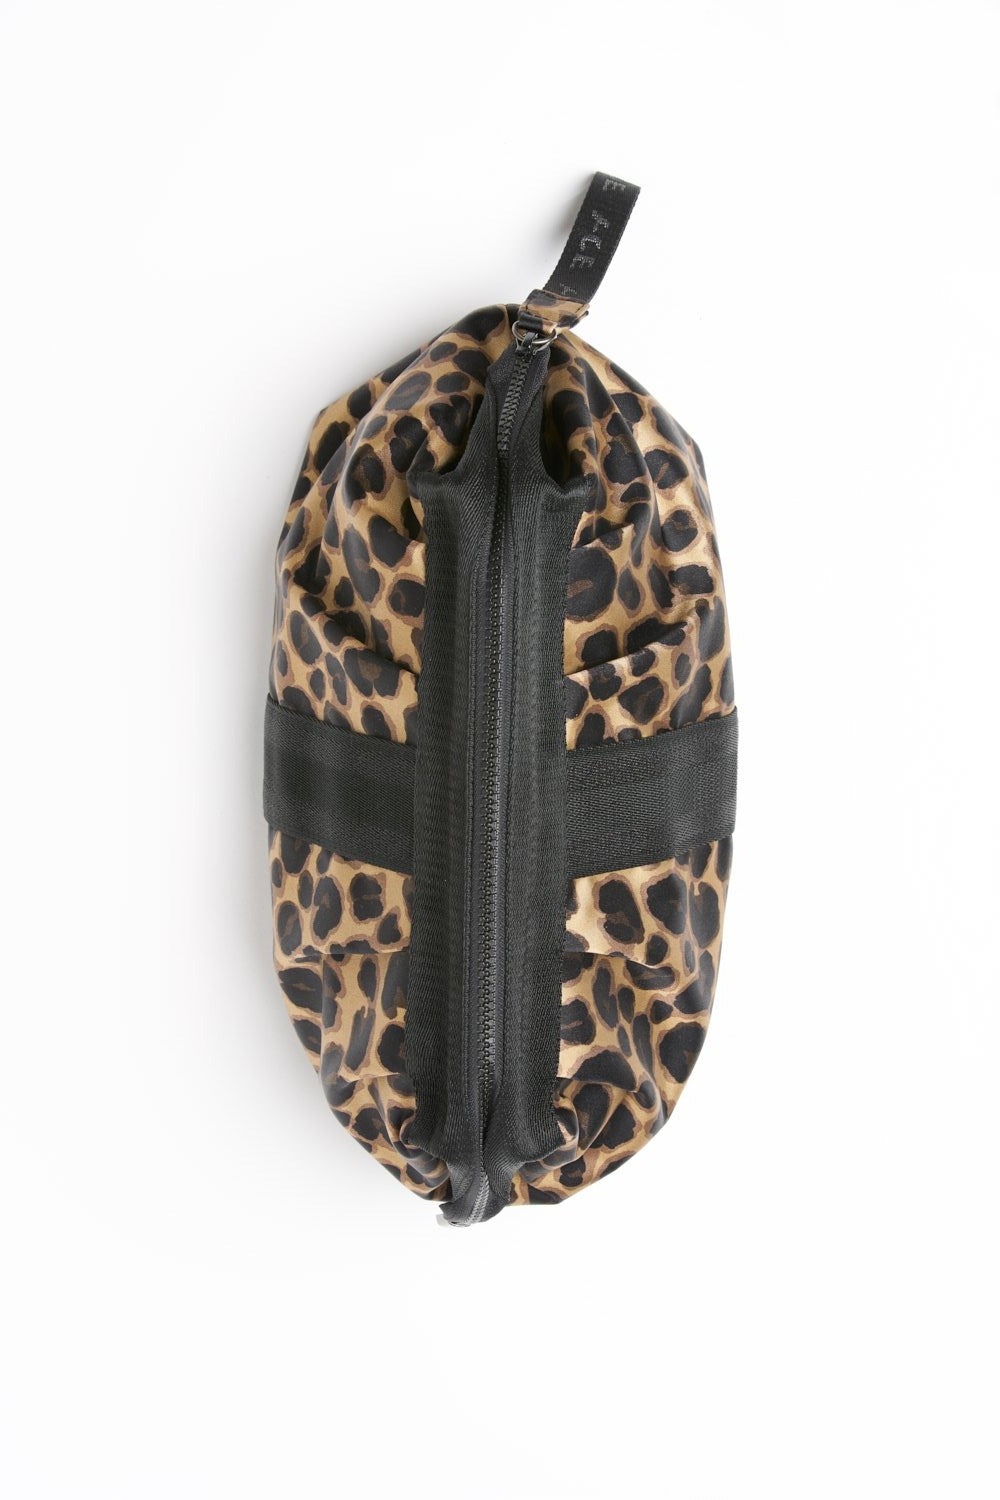 ACE Cosmetic Bag Leopard top view